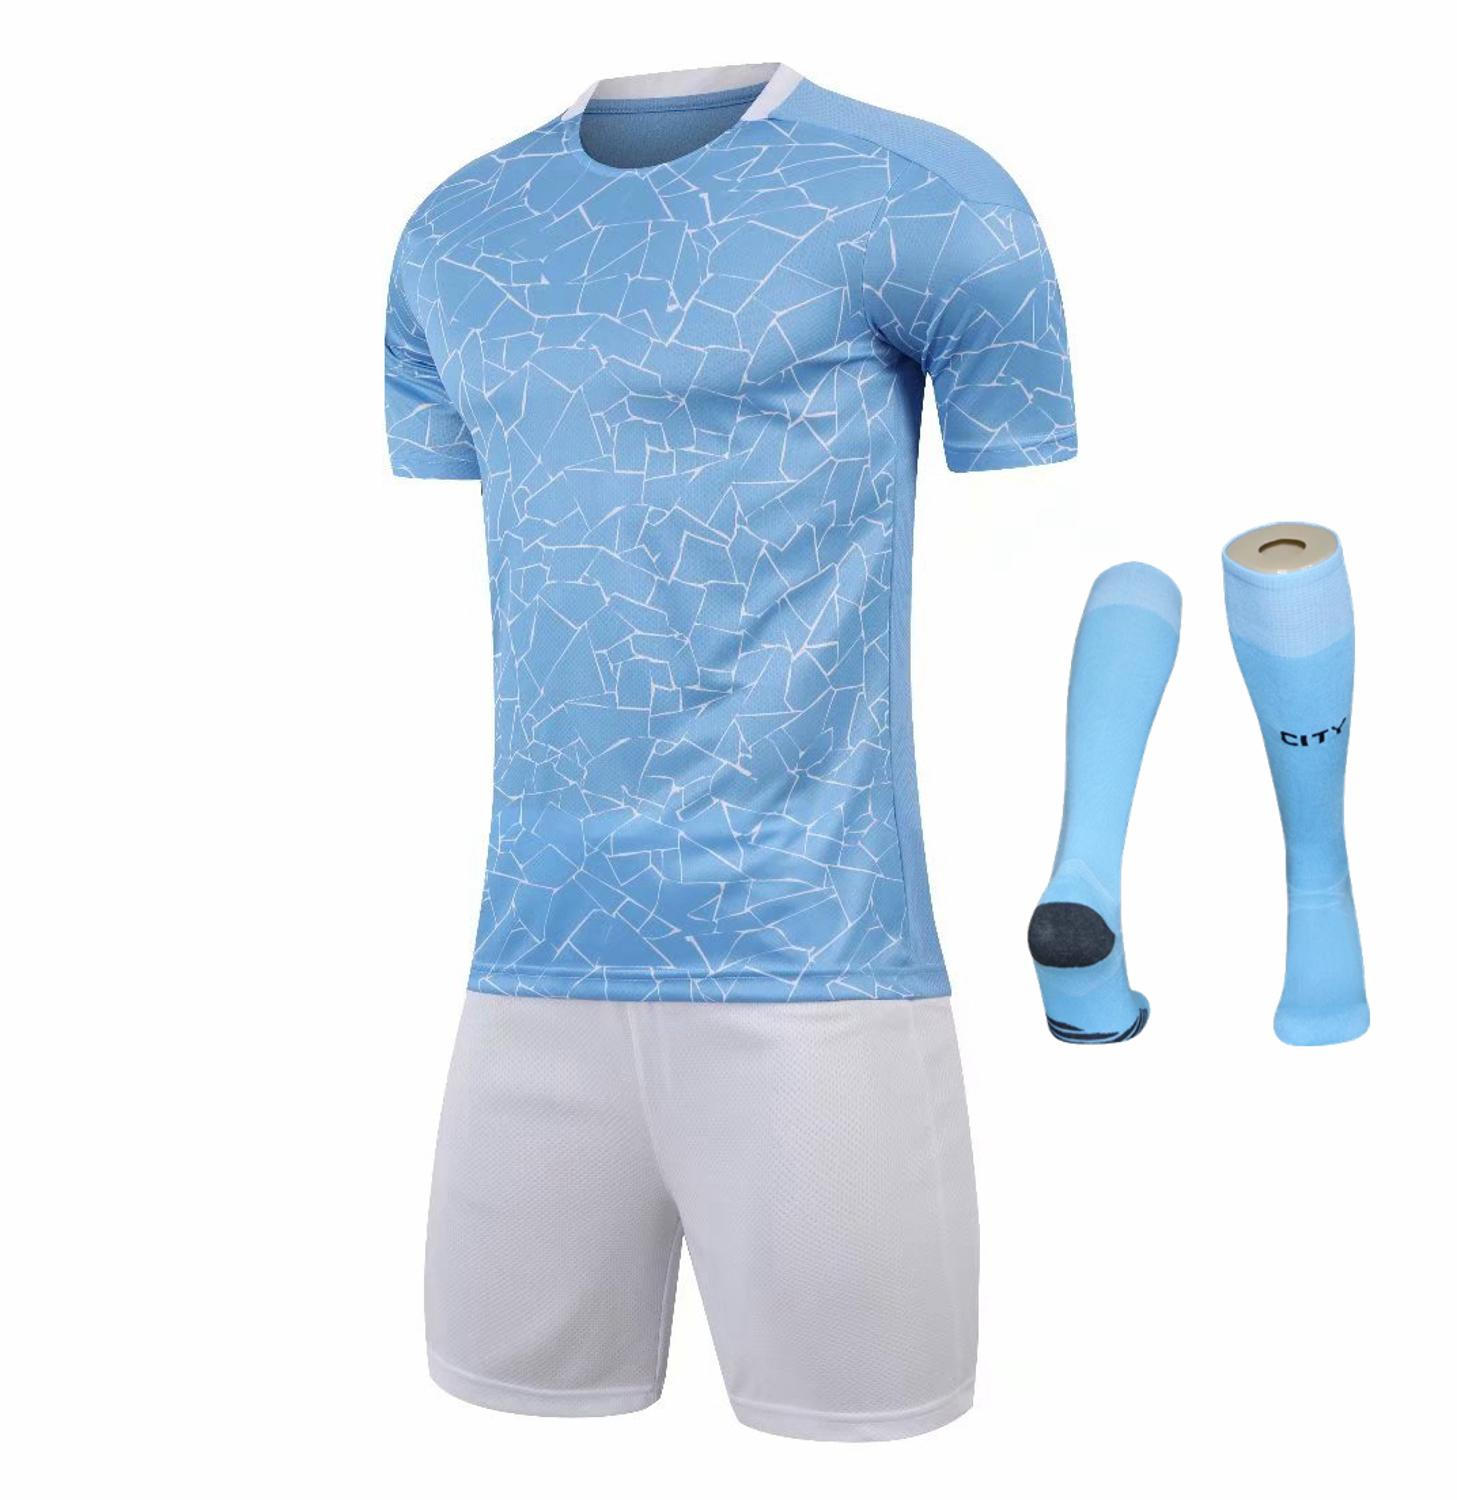 Children Sets football uniforms boys and girls sports kids youth training suits blank custom print soccer set with socks 13